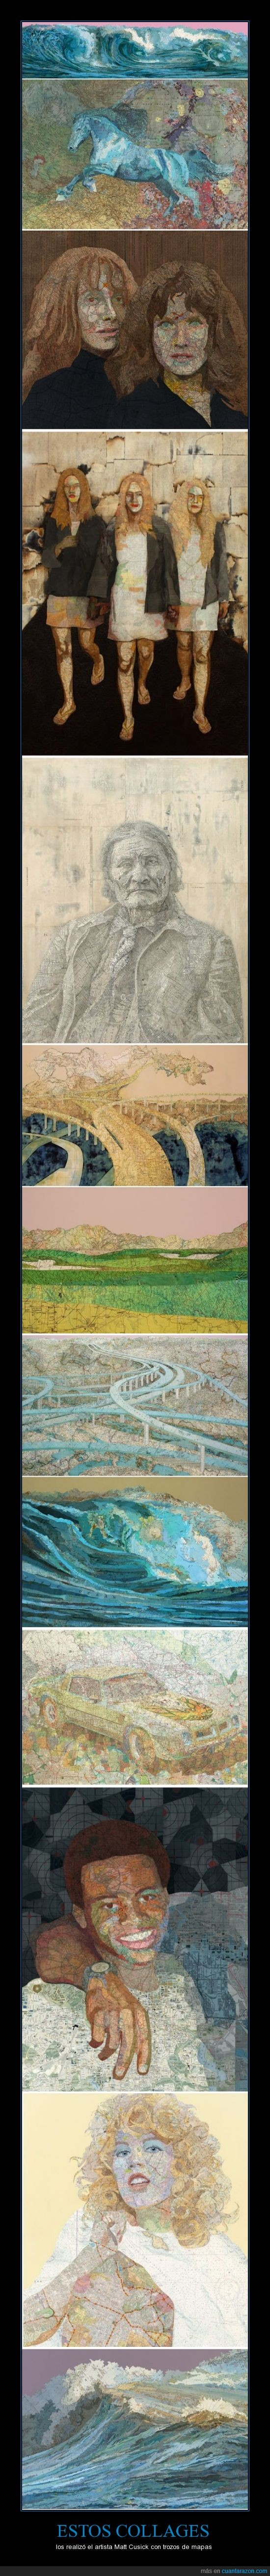 arte,collage,mapas,matt cusick